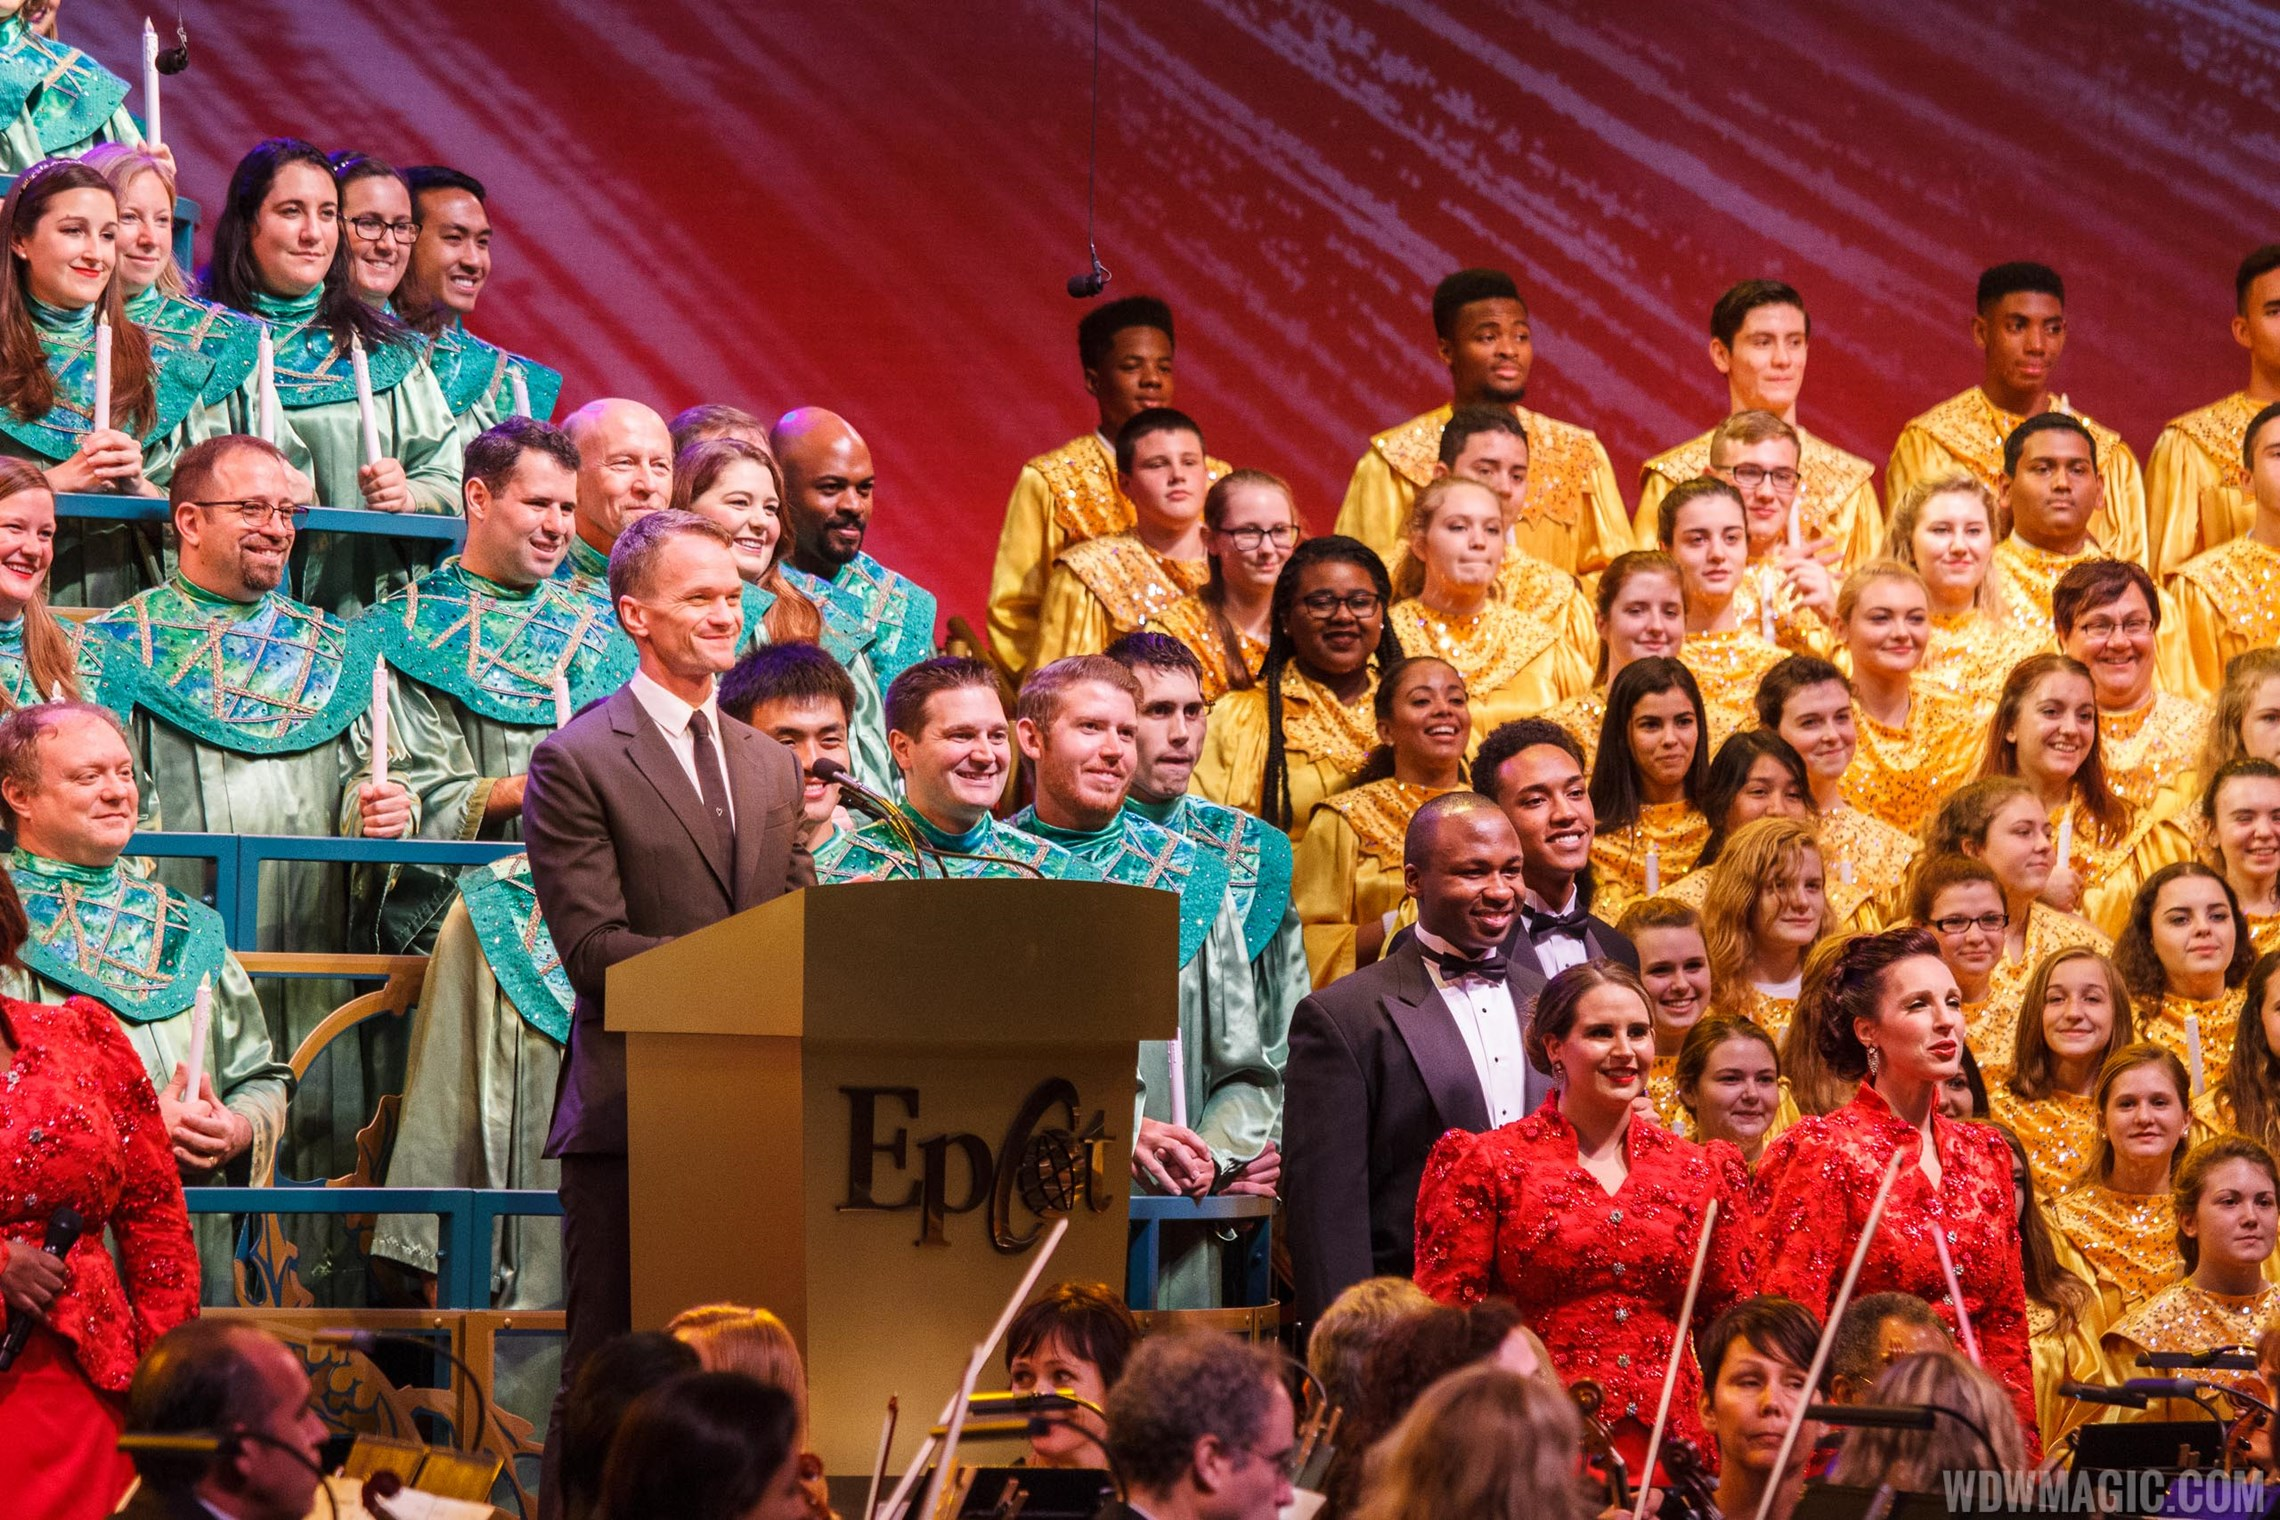 Neil Patrick Harris Candlelight Processional 2015